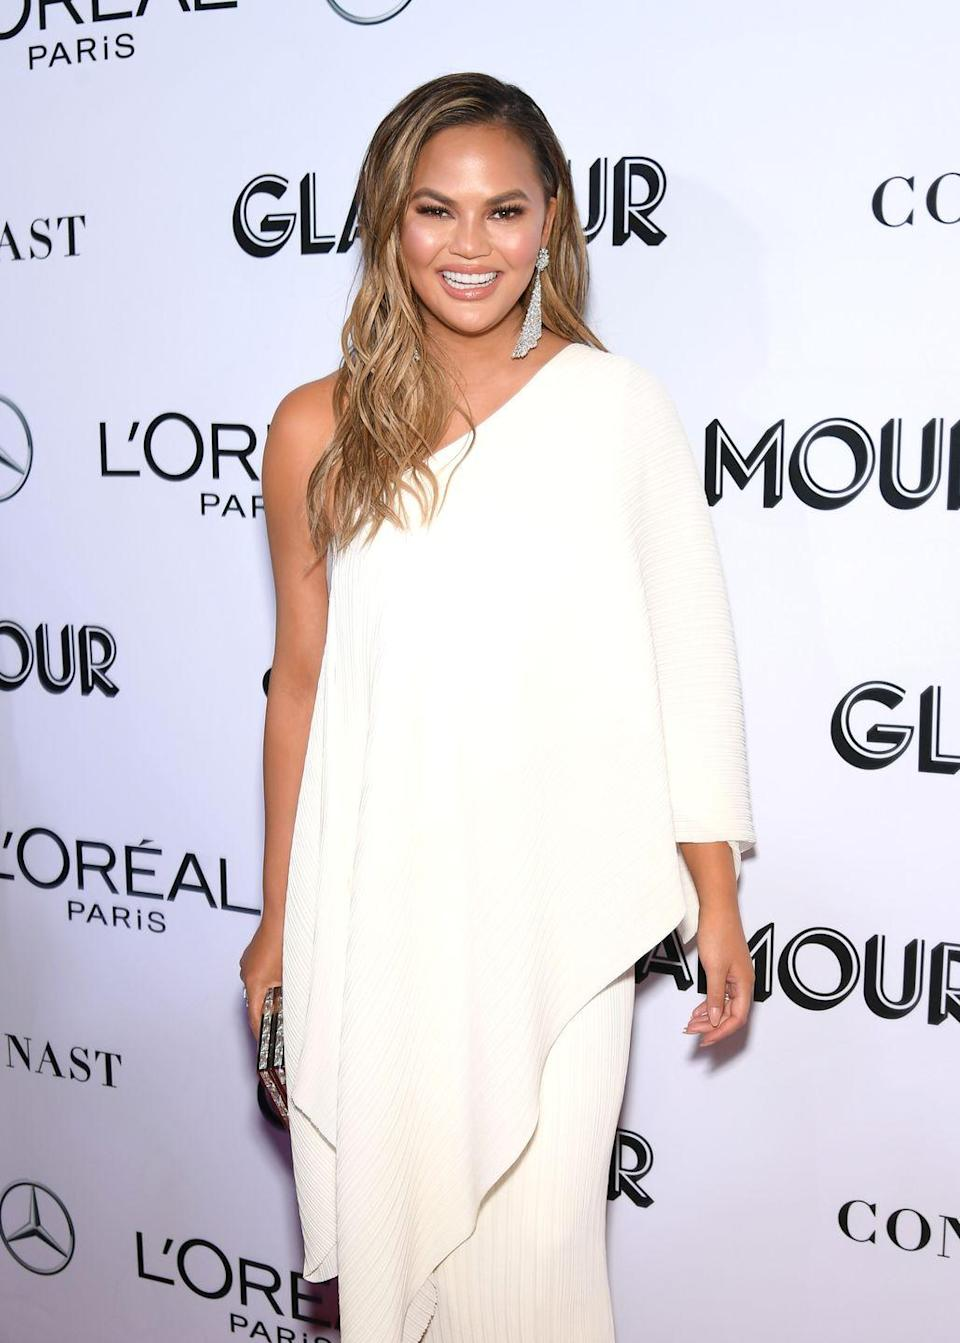 """<p>Though Chrissy <a href=""""https://www.byrdie.com/chrissy-teigen-plastic-surgery"""" rel=""""nofollow noopener"""" target=""""_blank"""" data-ylk=""""slk:previously joked"""" class=""""link rapid-noclick-resp"""">previously joked</a> that """"everything about [her] was fake except [her] cheeks,"""" the <em>Craving</em><em>s </em>author revealed that liposuction is the one surgery she <em>did </em>have. """"I had an armpit sucked out, which was one of the best things,"""" she told <a href=""""https://www.refinery29.com/en-us/2017/05/153132/chrissy-teigen-liposuction-confession"""" rel=""""nofollow noopener"""" target=""""_blank"""" data-ylk=""""slk:Refinery29"""" class=""""link rapid-noclick-resp"""">Refinery29</a>.</p><p>""""It's a big secret, but I don't care... It made me feel better in dresses; I felt more confident. It was the dumbest, stupidest thing I've ever done. The dumbest, but I like it, whatever.""""</p>"""